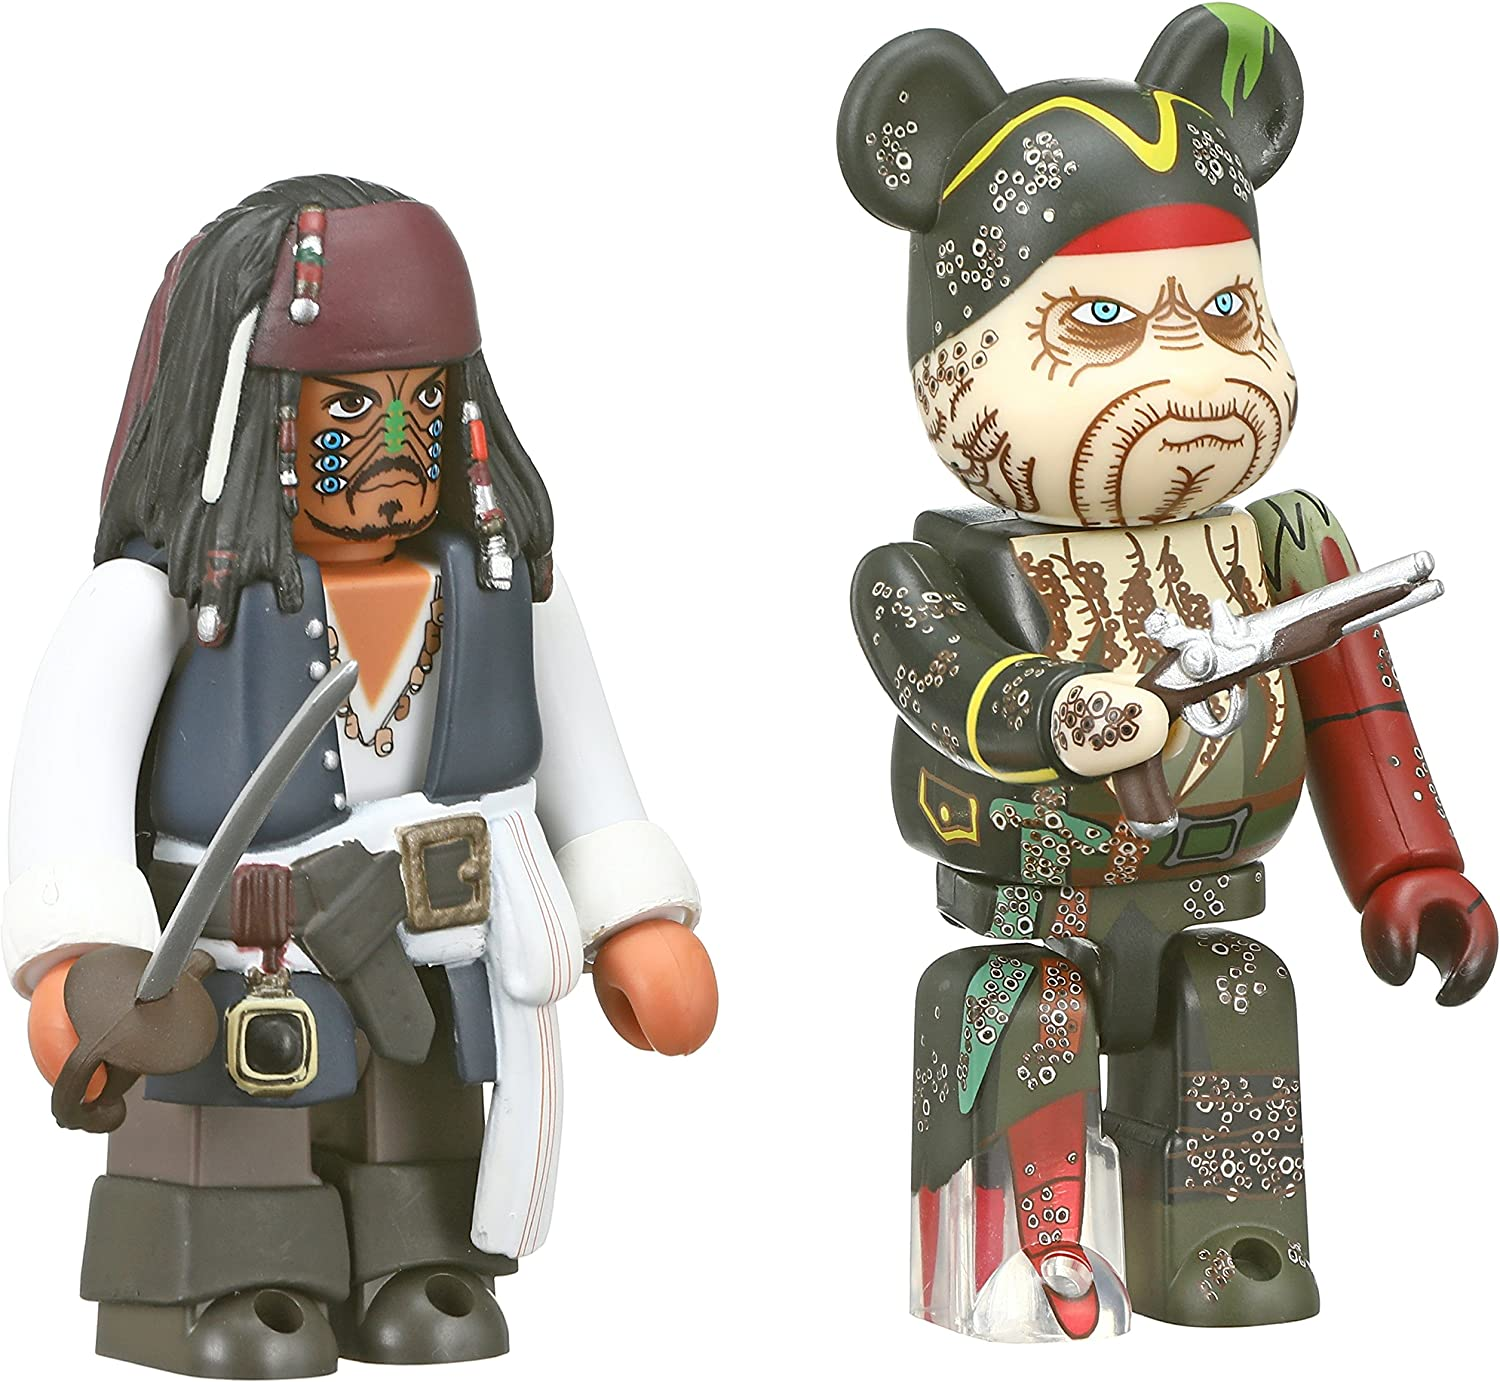 KUB + B @ Pirates of the Caribbean (Dead Man's Chest) (Japan import   The package and the manual are written in Japanese)